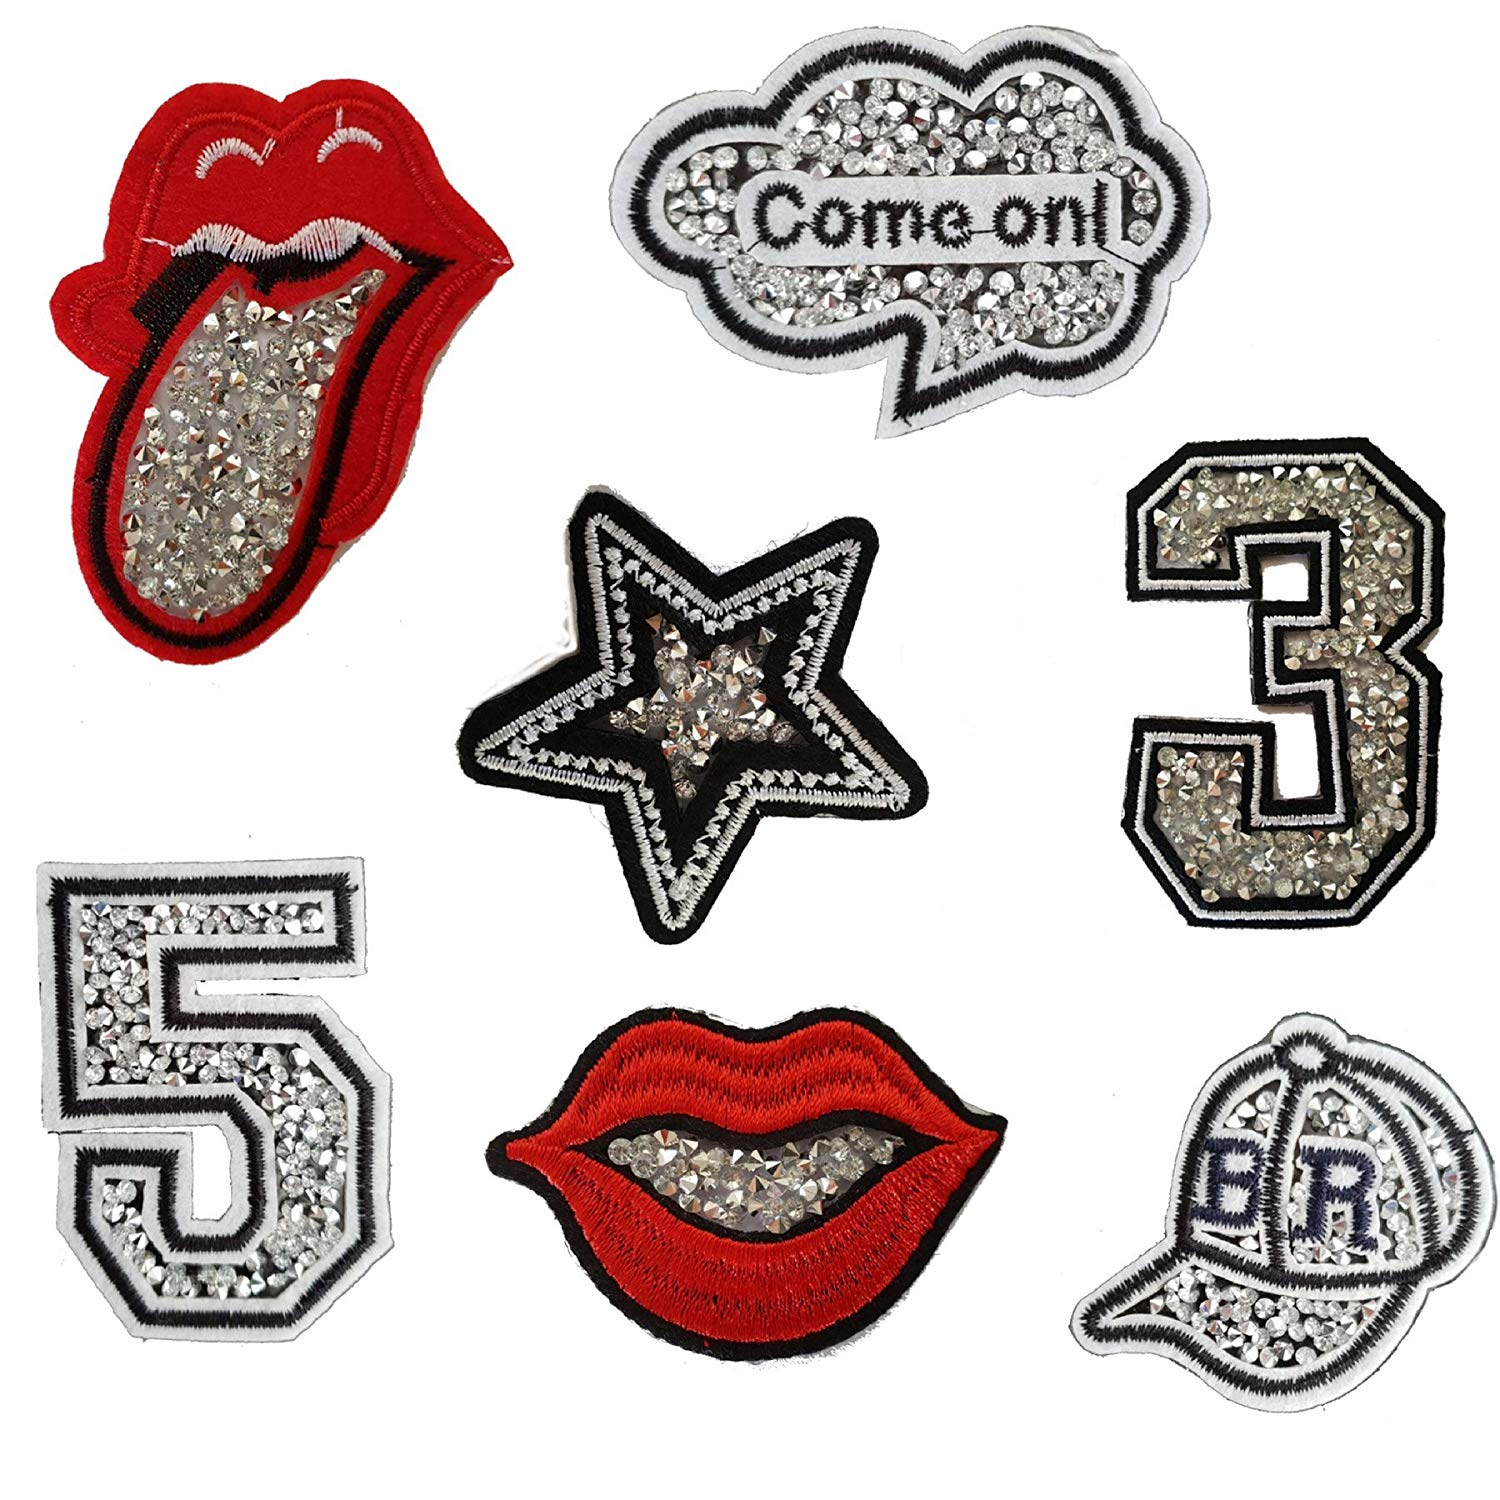 Special100% Iron On Patches Or Sew on 7 Pieces Cool Patches Fabric Embroidered Badge, Crushed Crystals Motif Applique Kit, for DIY Jeans Jacket, Clothing, etc